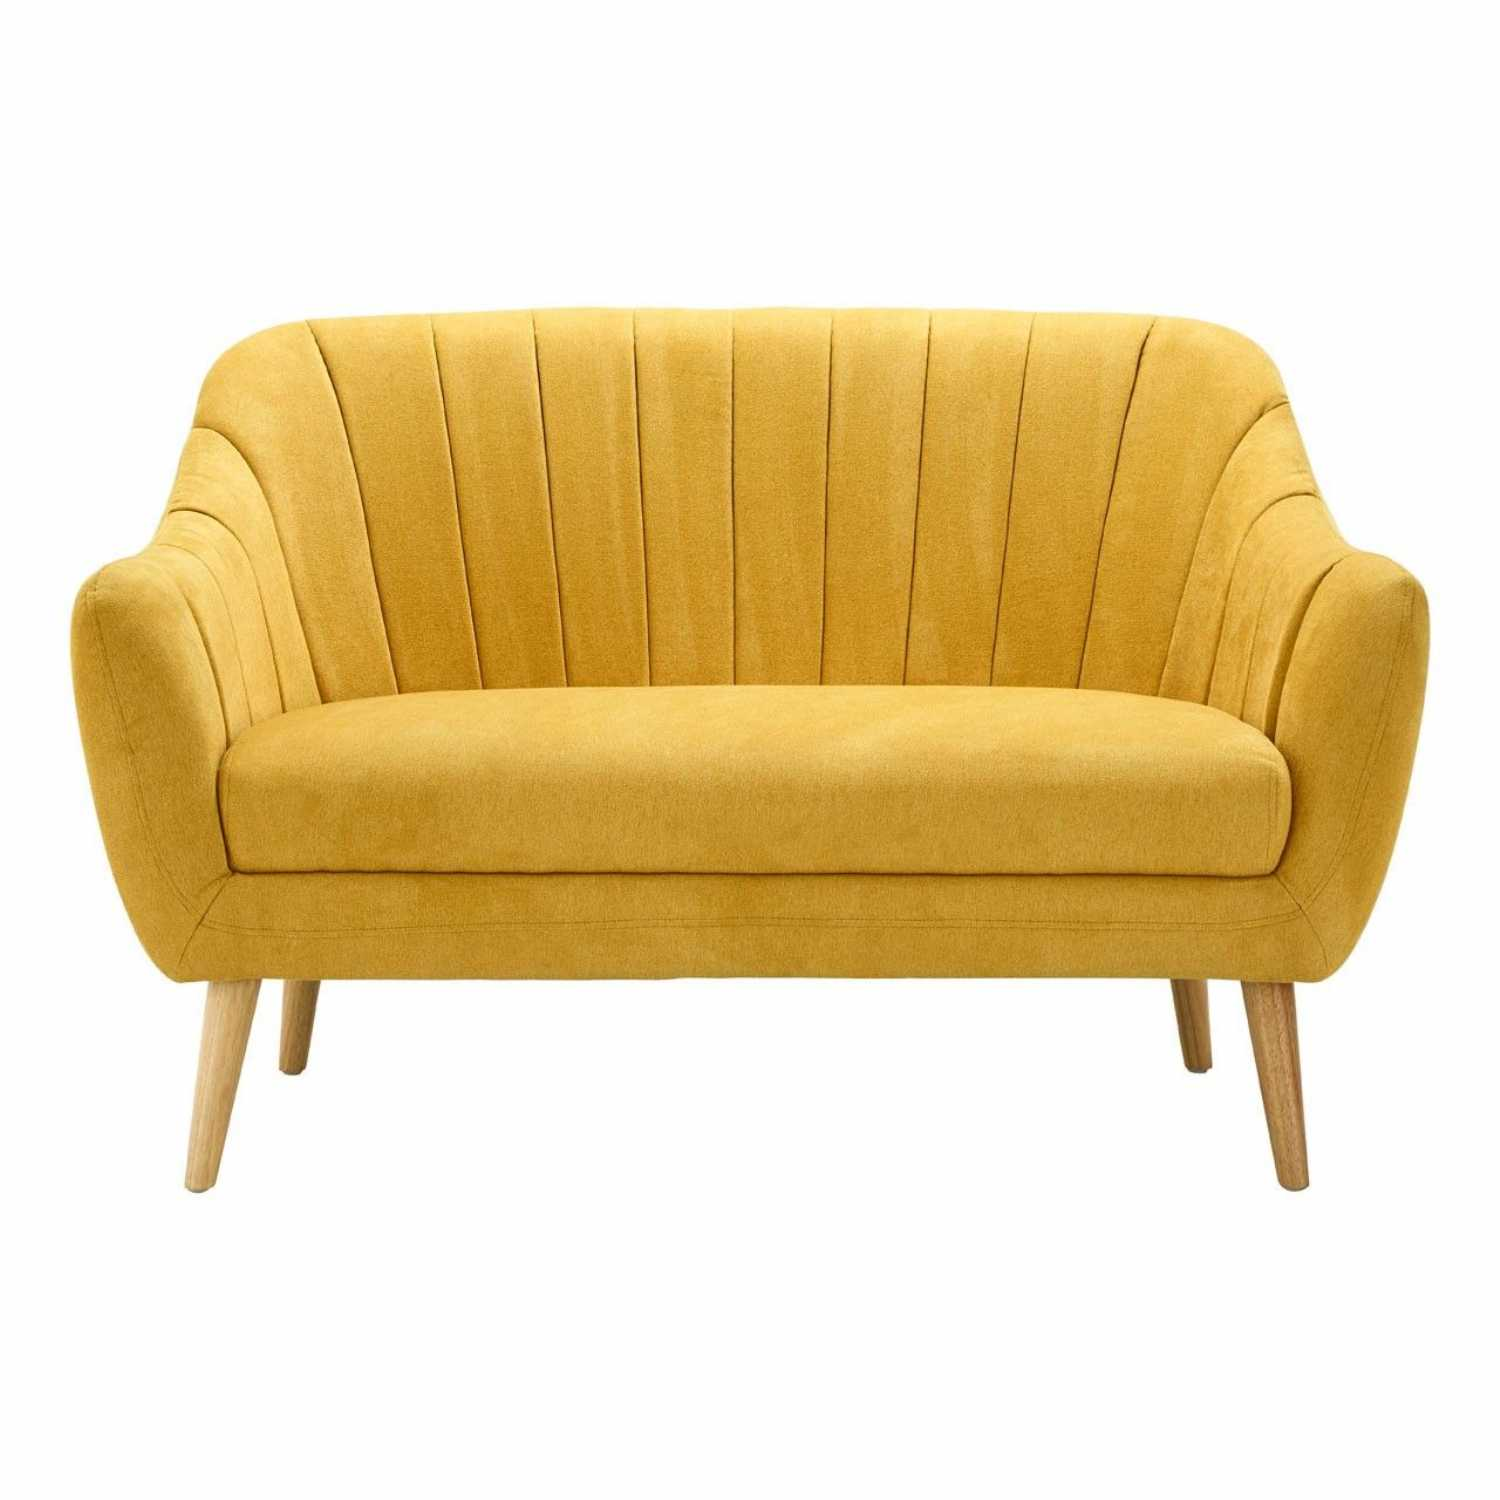 retro style sofa uk broyhill modern gottenberg 2 seater with yellow